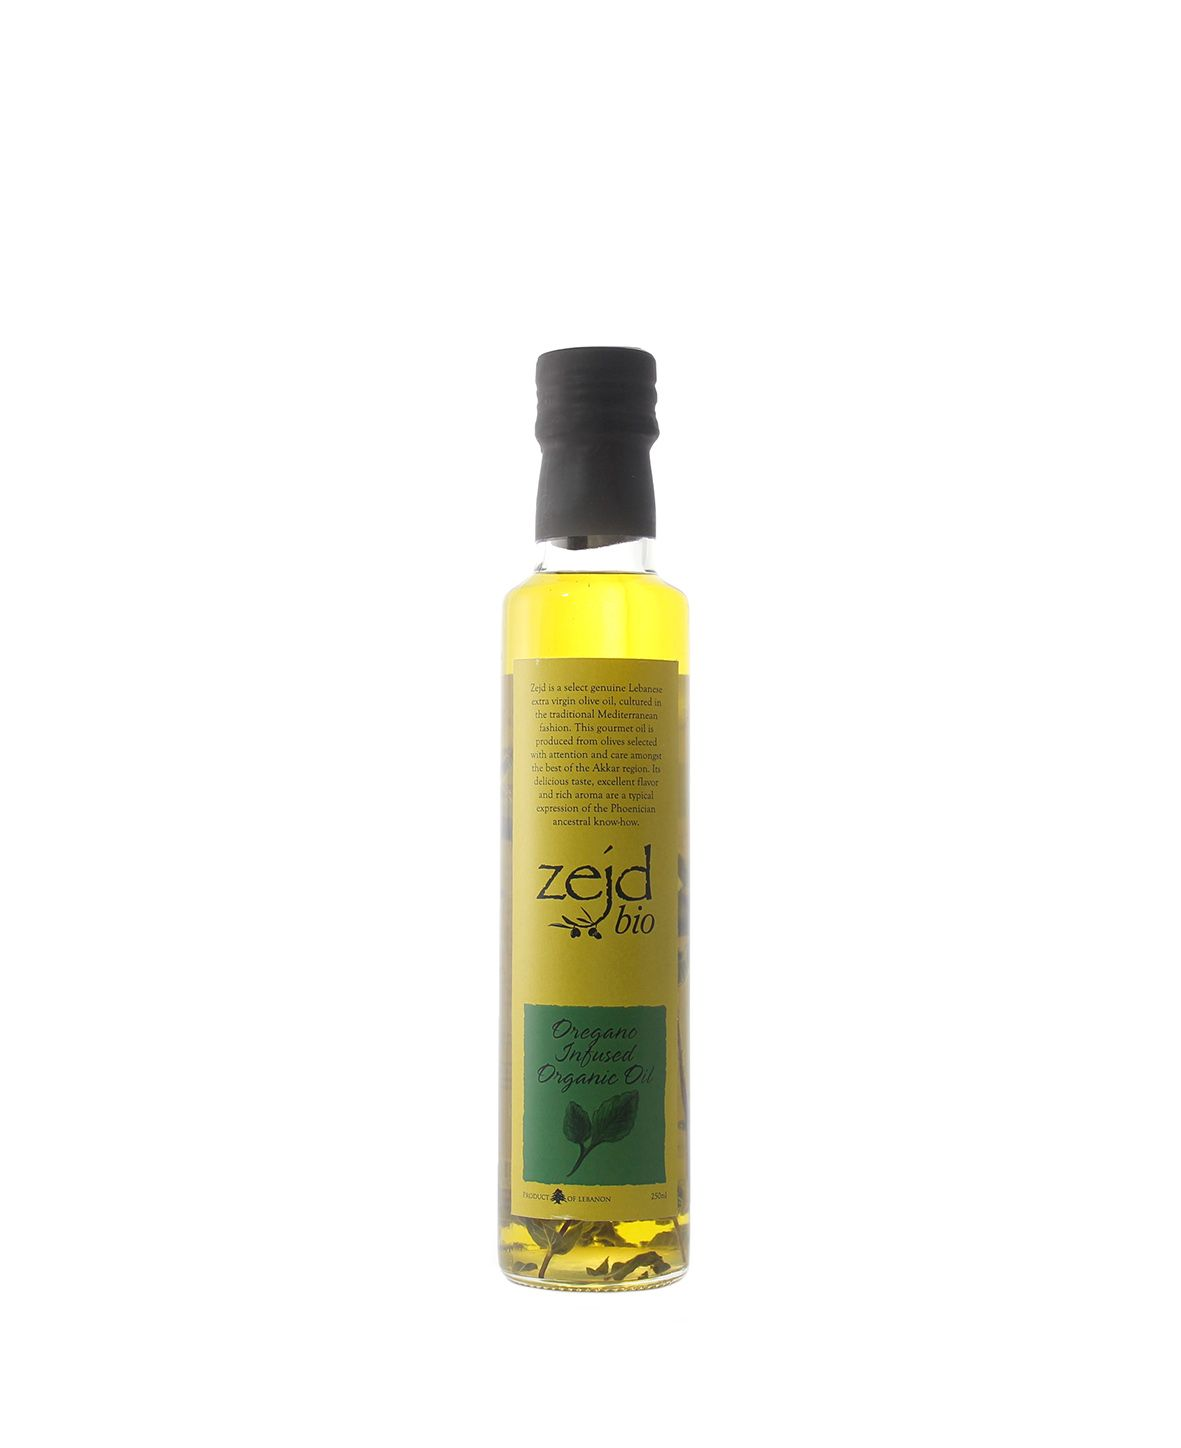 House of Zejd Oregano Infusion Oil, 250mL